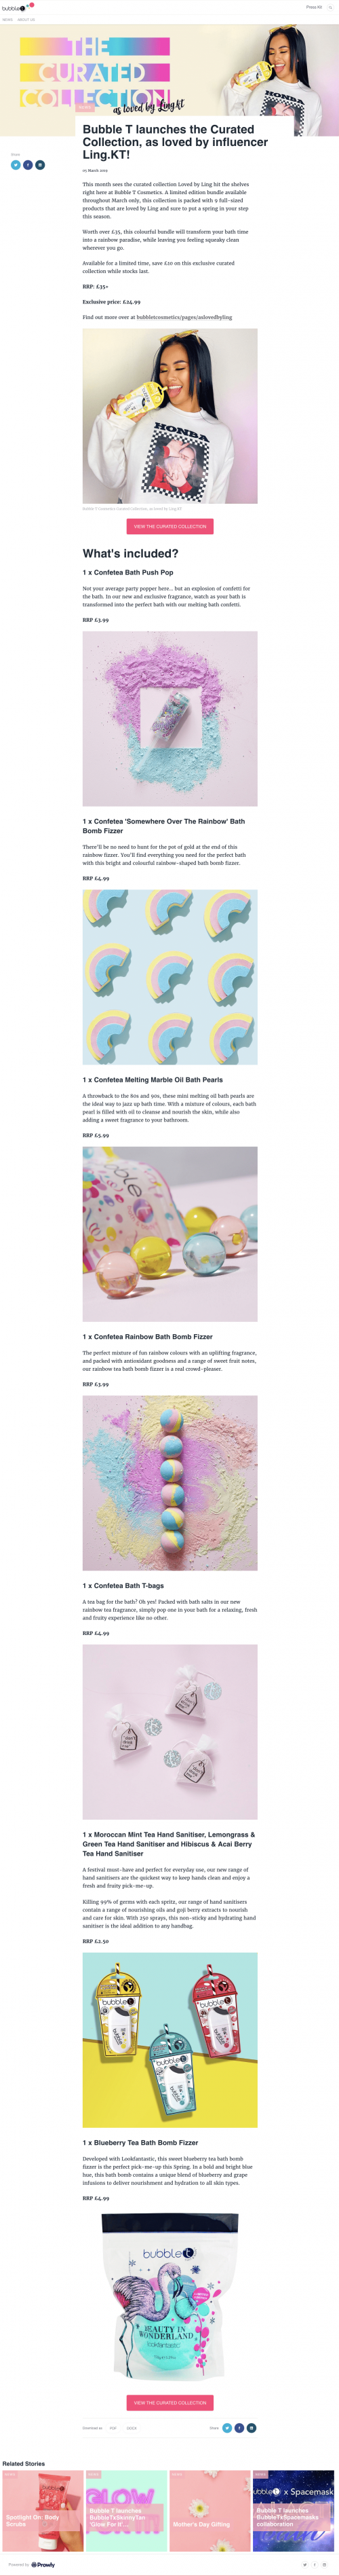 Cosmetics Product Press Release Example